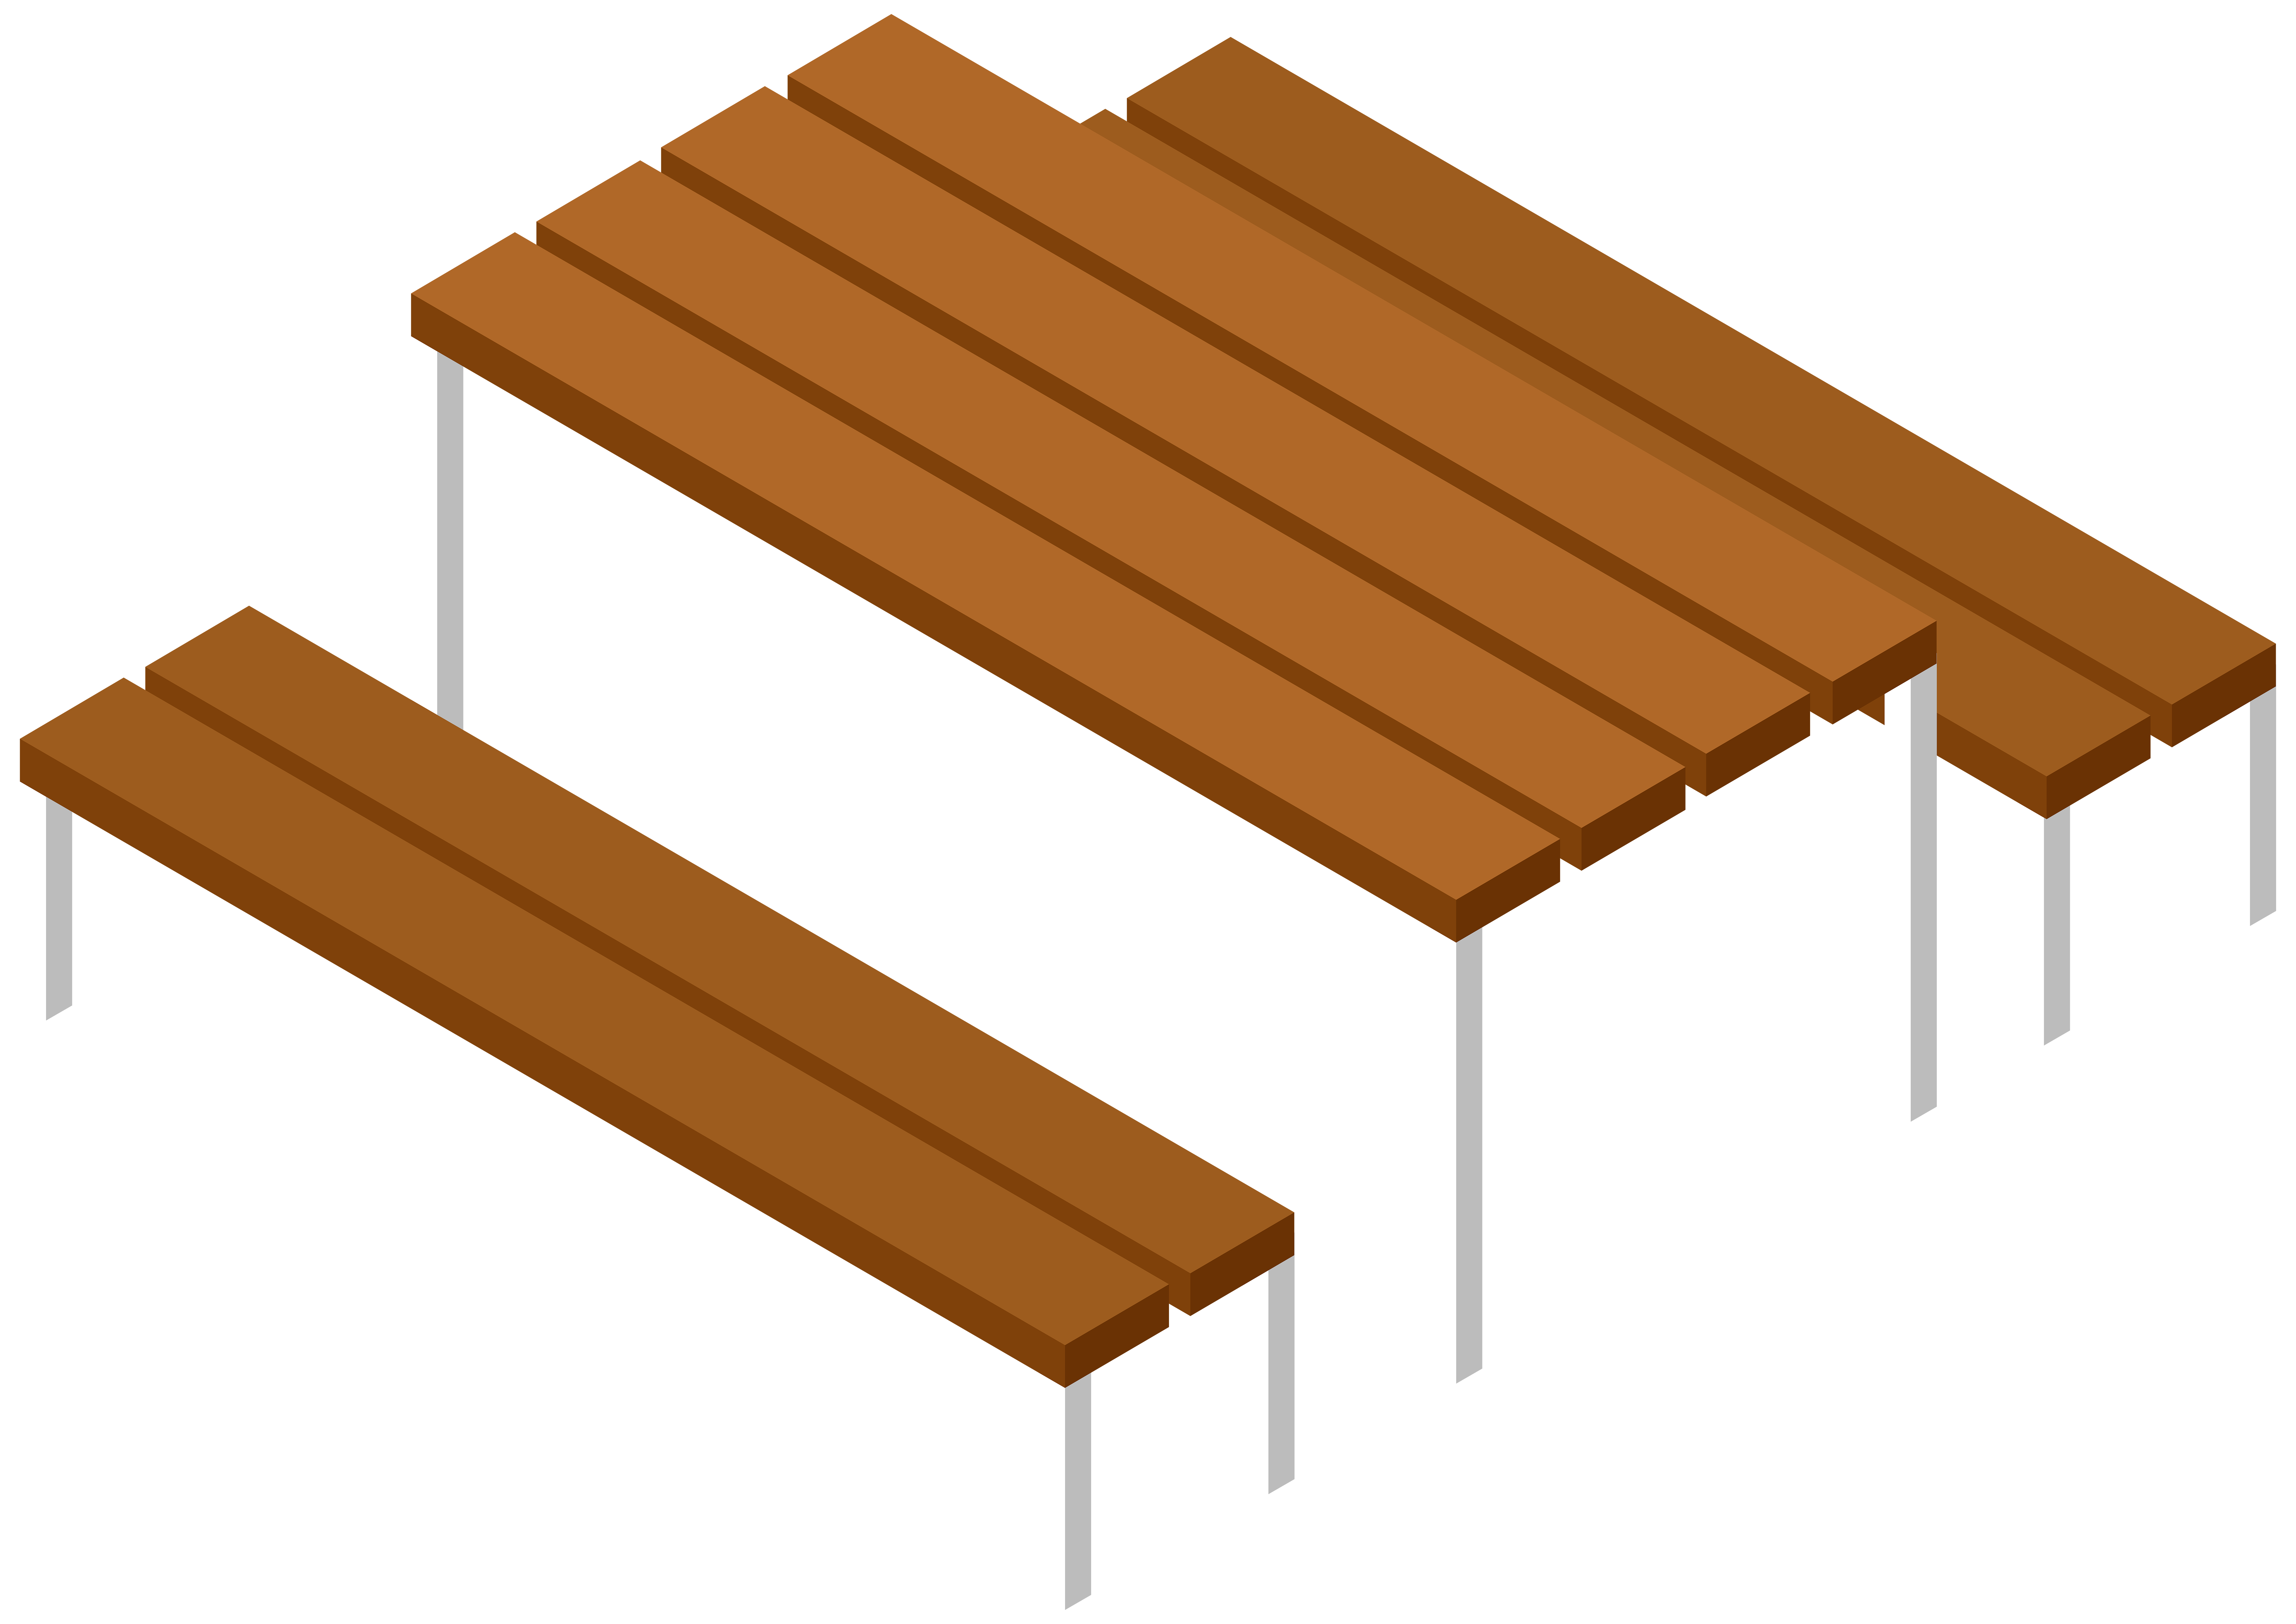 Picnic table and bench. Staircase clipart fancy